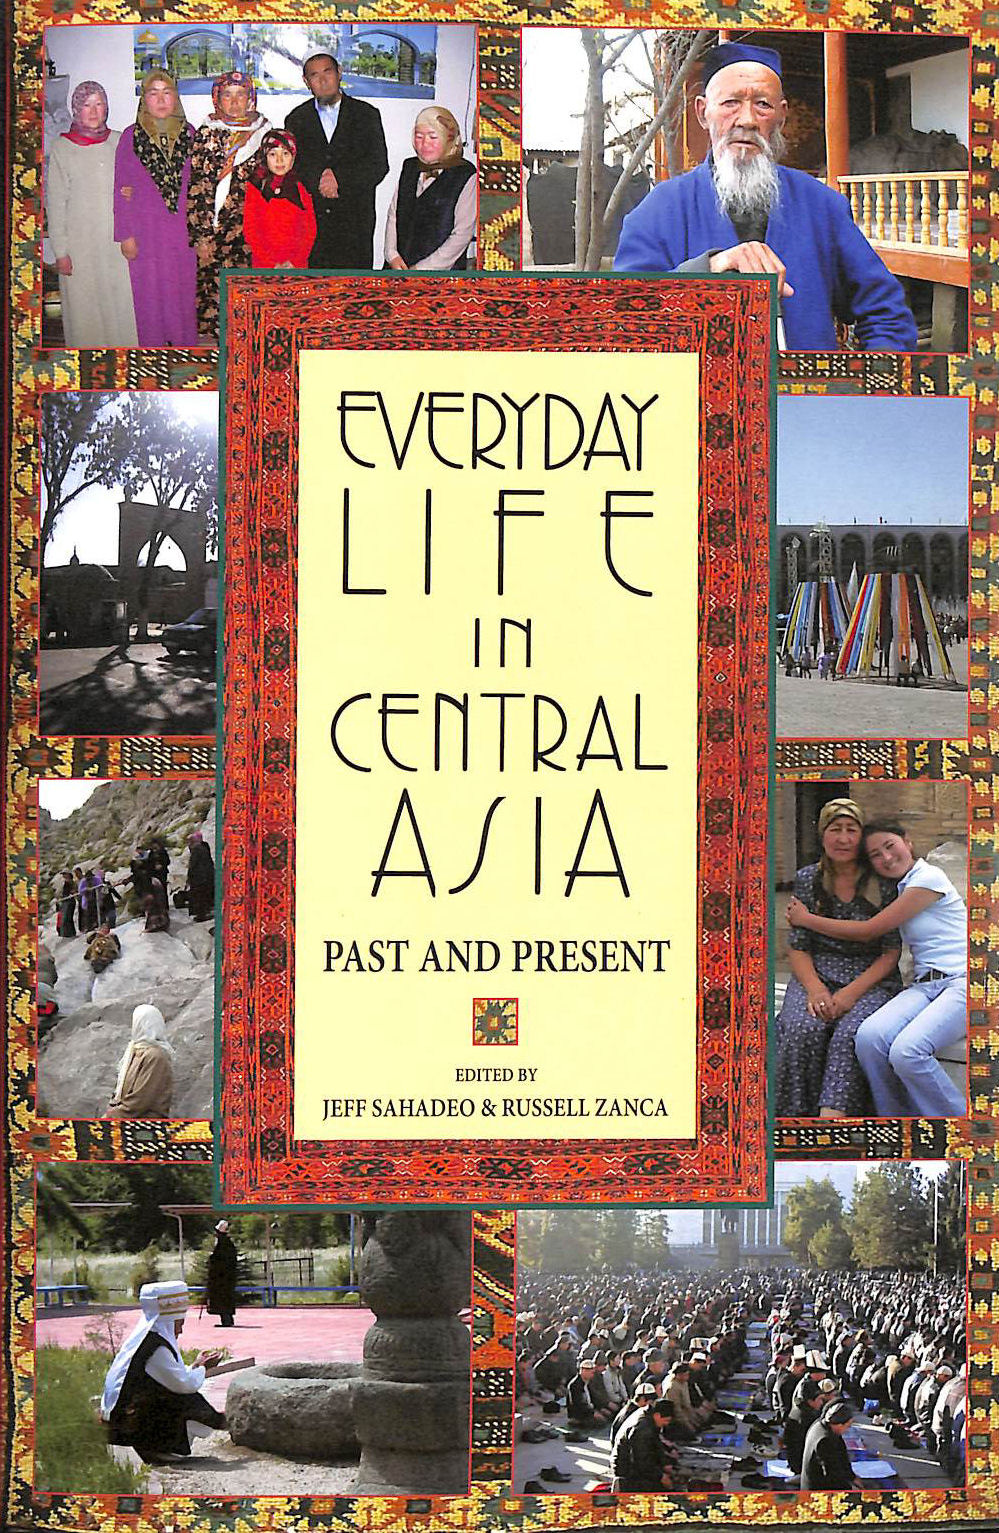 Everyday Life in Central Asia: Past and Present, Sahadeo, Jeff [Editor]; Zanca, Russell [Editor];